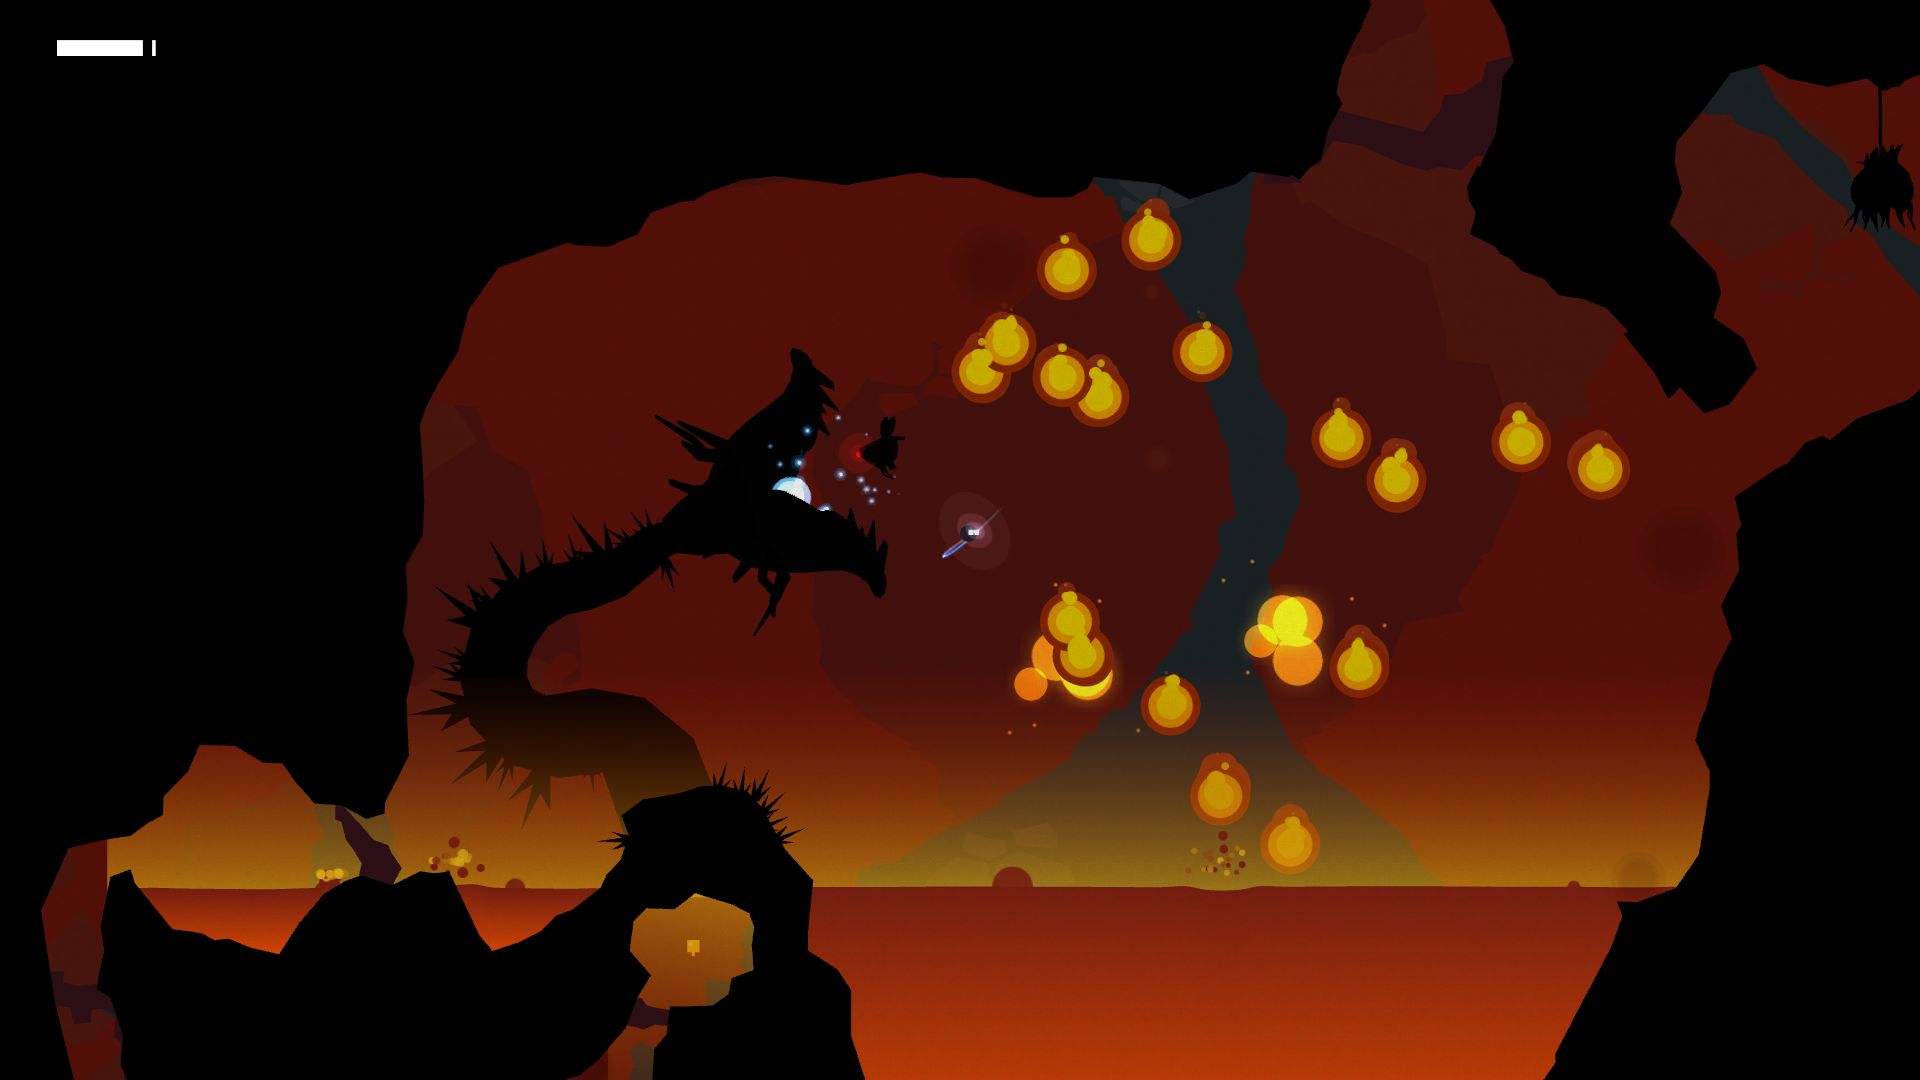 Forma.8 280214 7